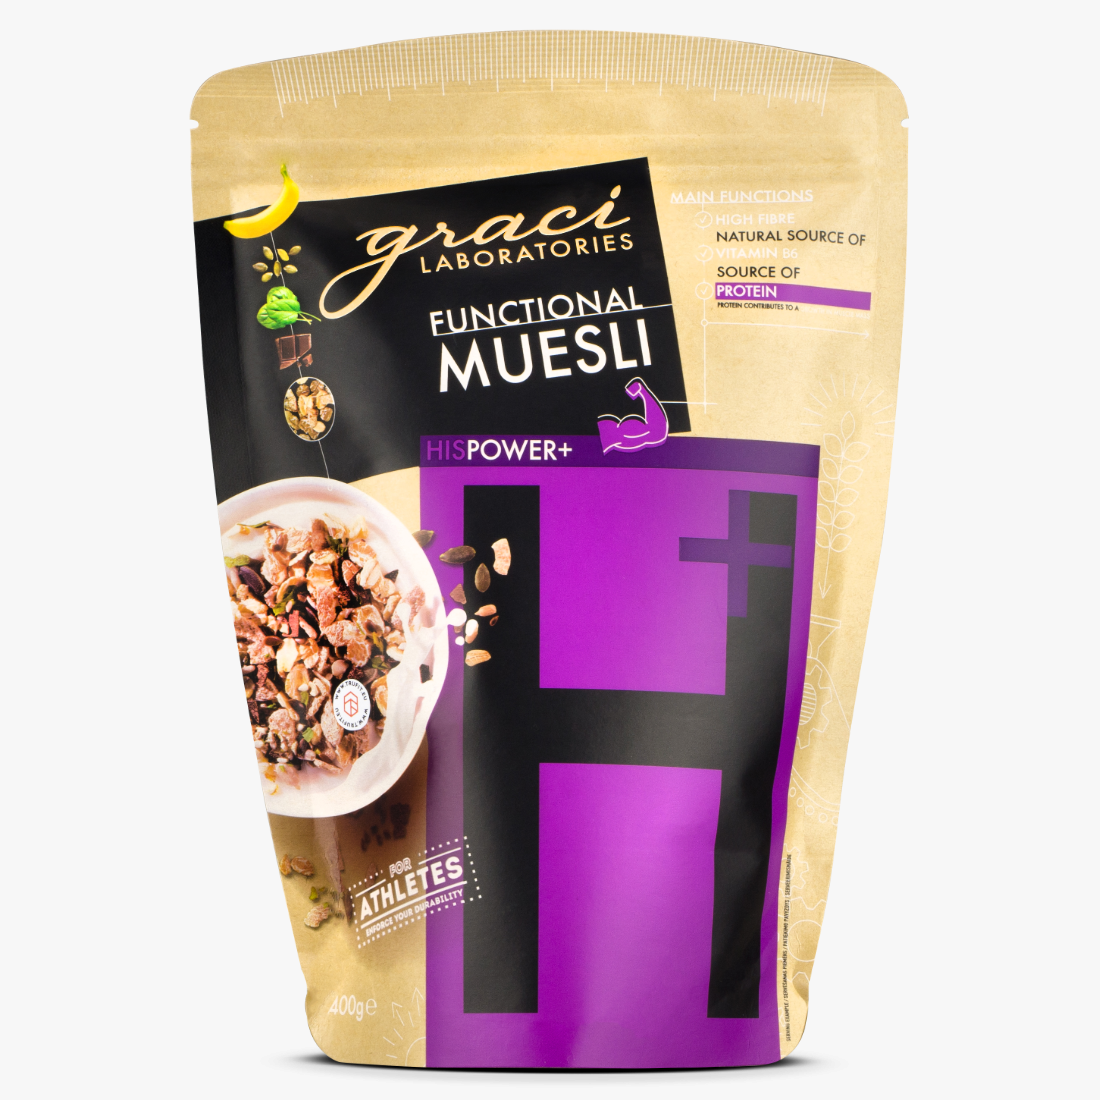 Graci Laboratories - HIS POWER Muesli